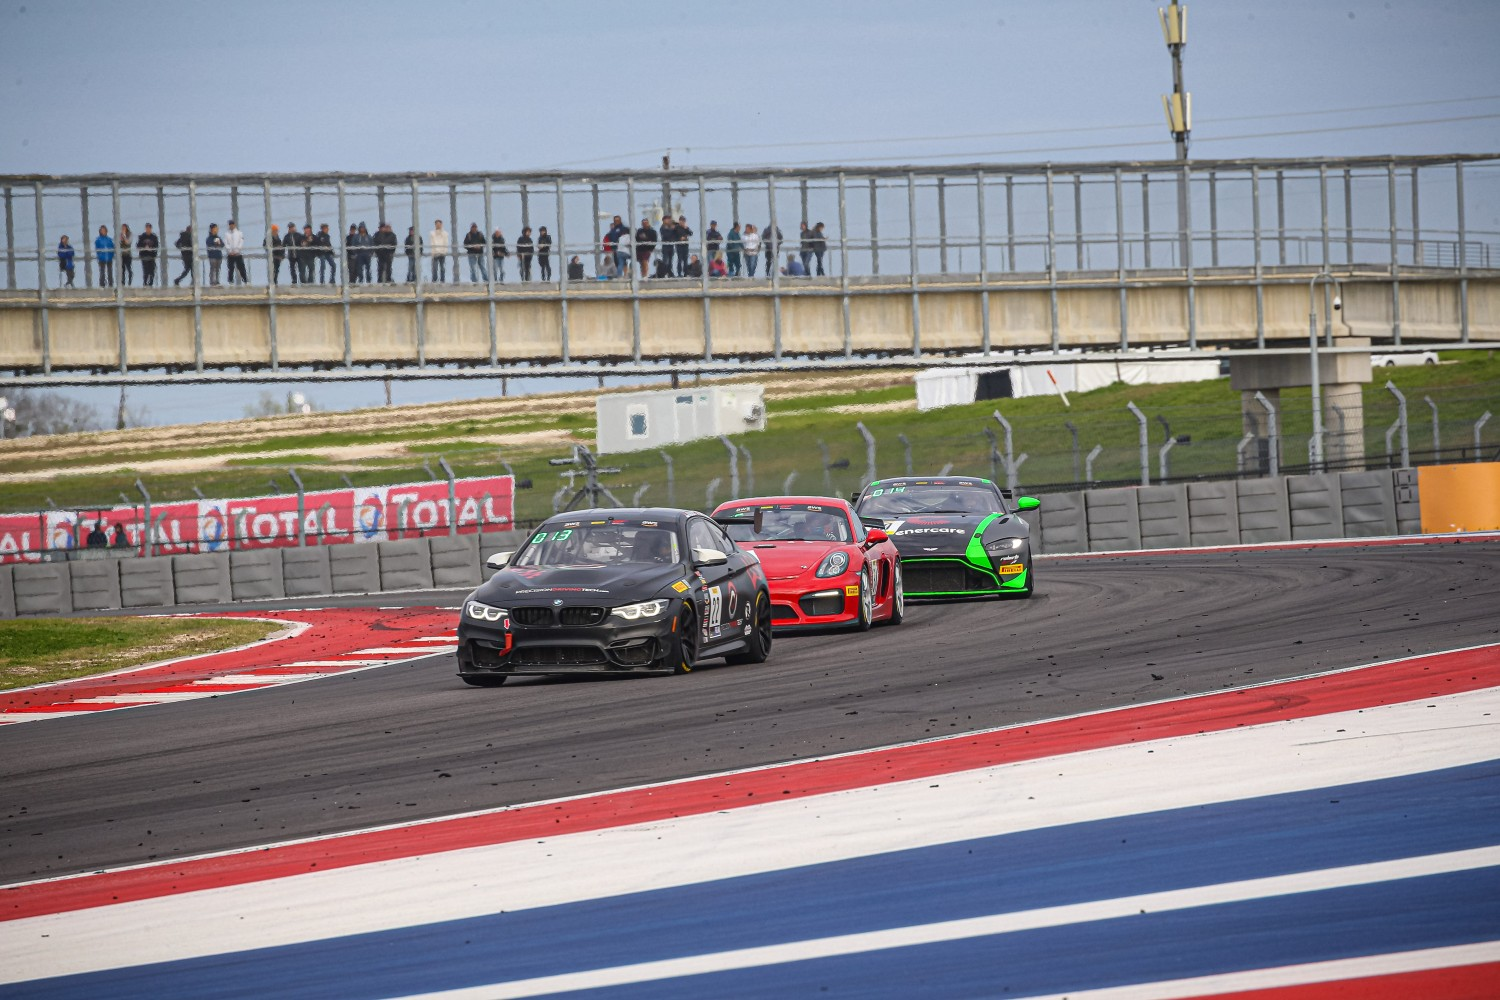 #22 GT4 Sprint, Am, Precision Driving Tech, Marko Radisic, BMW M4 GT4, 2020 SRO Motorsports Group - Circuit of the Americas, Austin TX  | SRO Motorsports Group